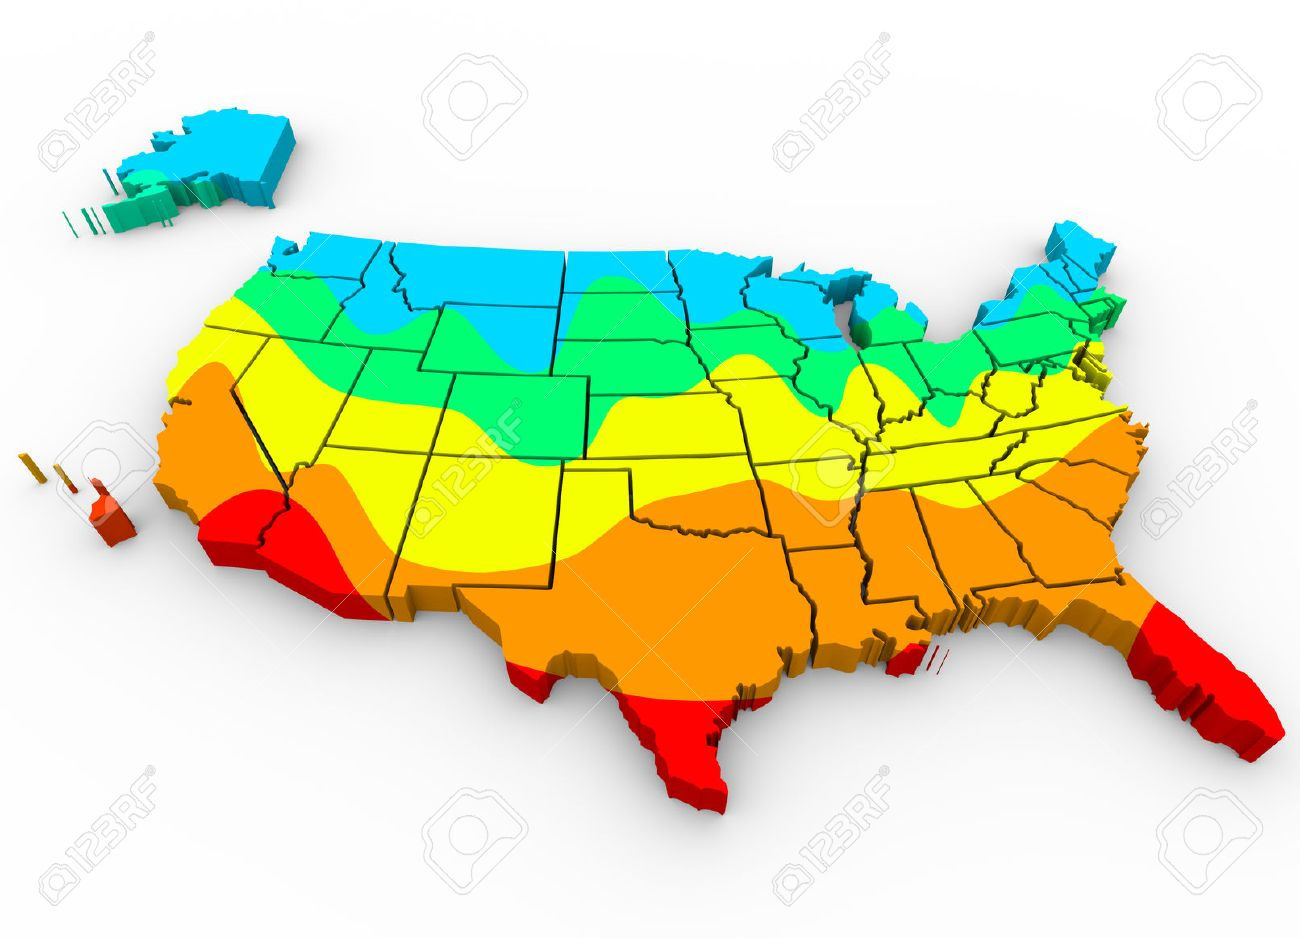 A Map Of The United States Of America With Regions Color Coded ...